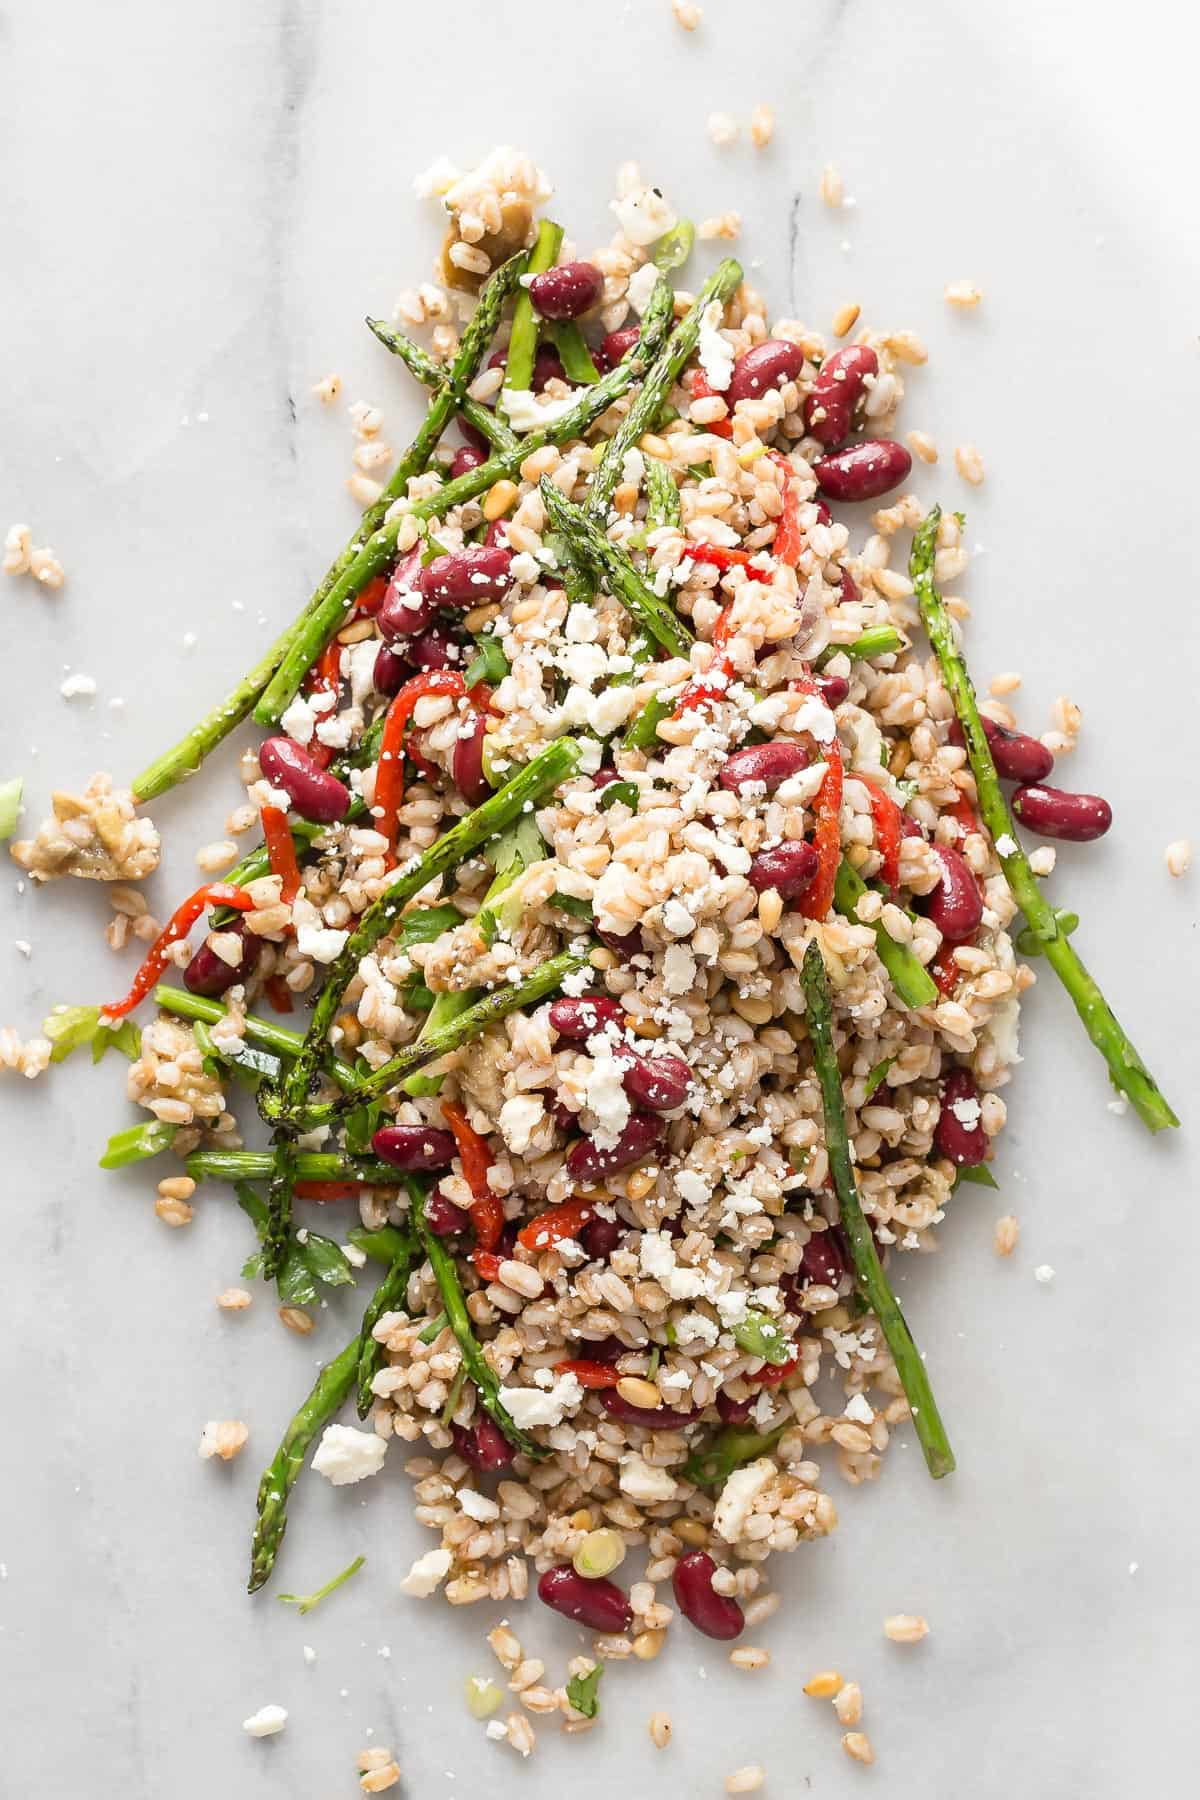 Roasted eggplant, farro and grilled asparagus are tossed in a Za'atar olive oil and lemon juice dressing